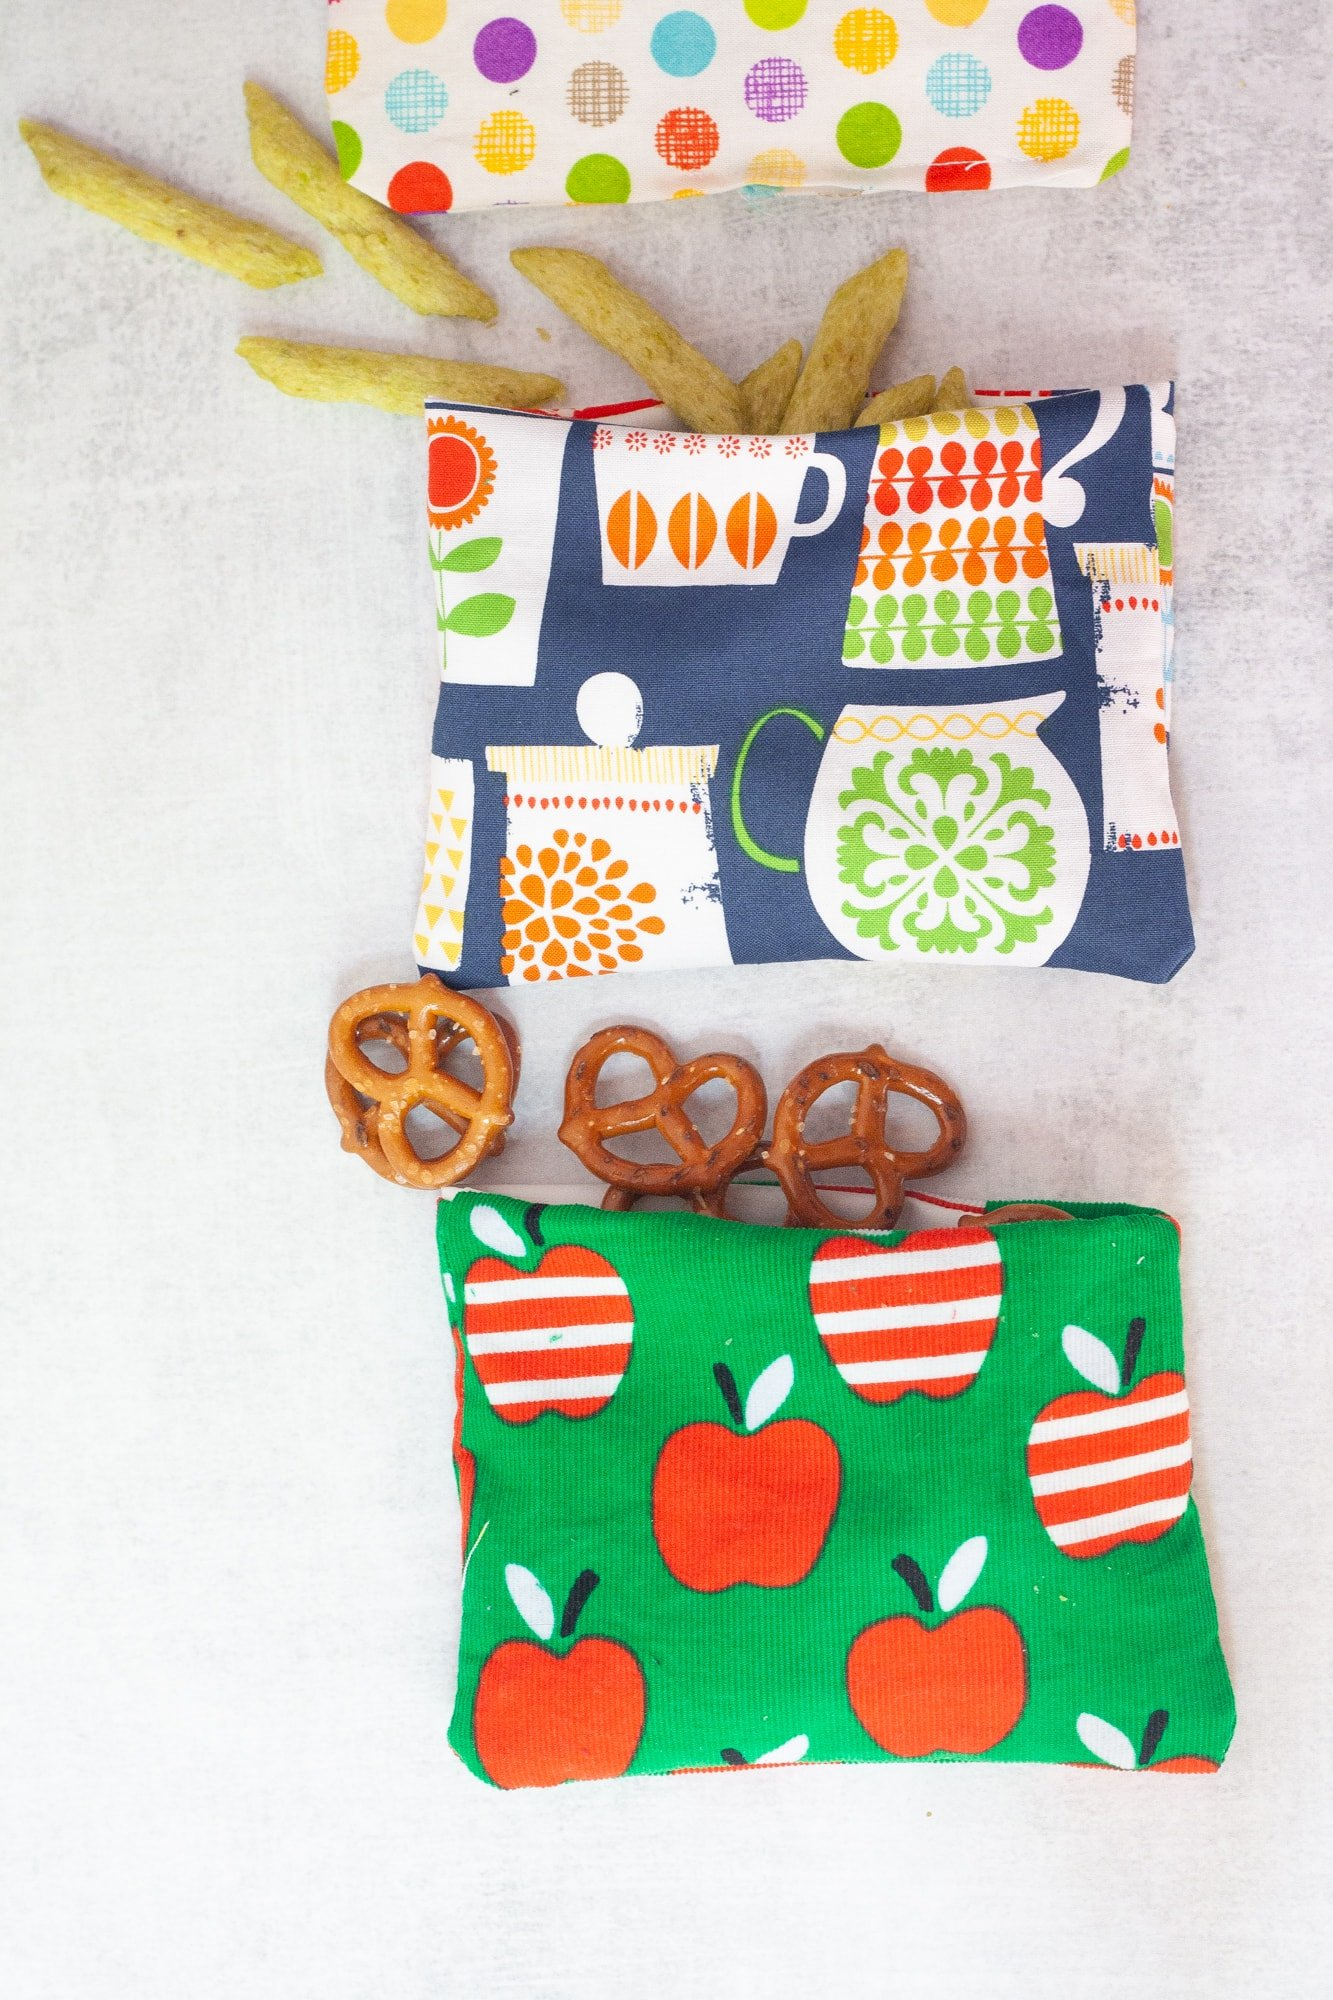 Reusable snack bags, each spilling out a different snack - pretzels and crispy snap peas